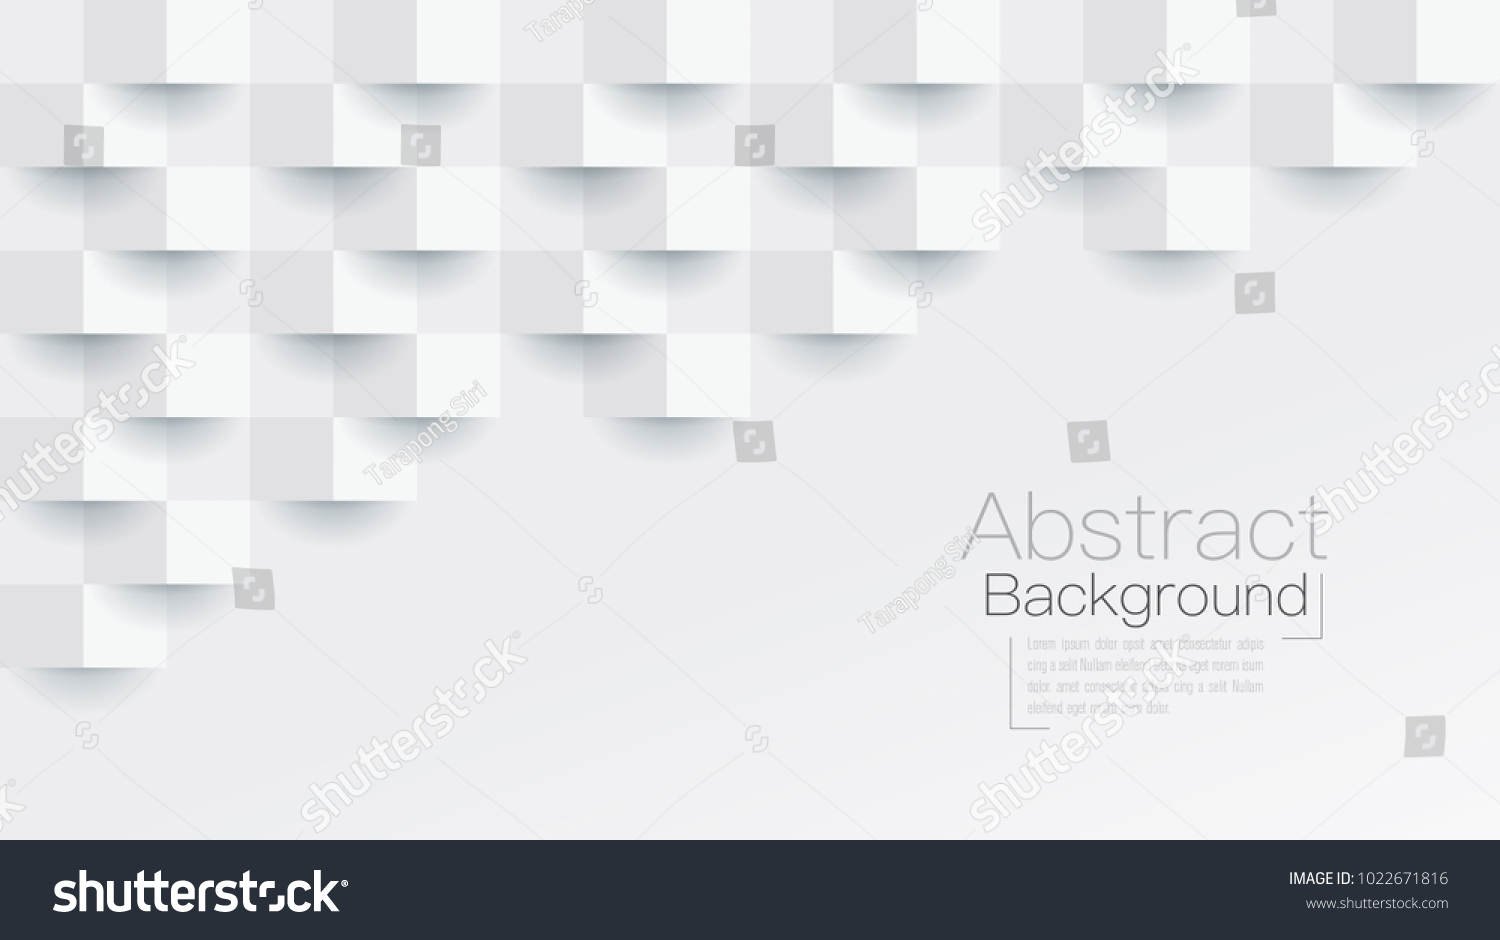 White abstract texture. Vector background 3d paper art style can be used in cover design, book design, poster, cd cover, flyer, website backgrounds or advertising. #1022671816